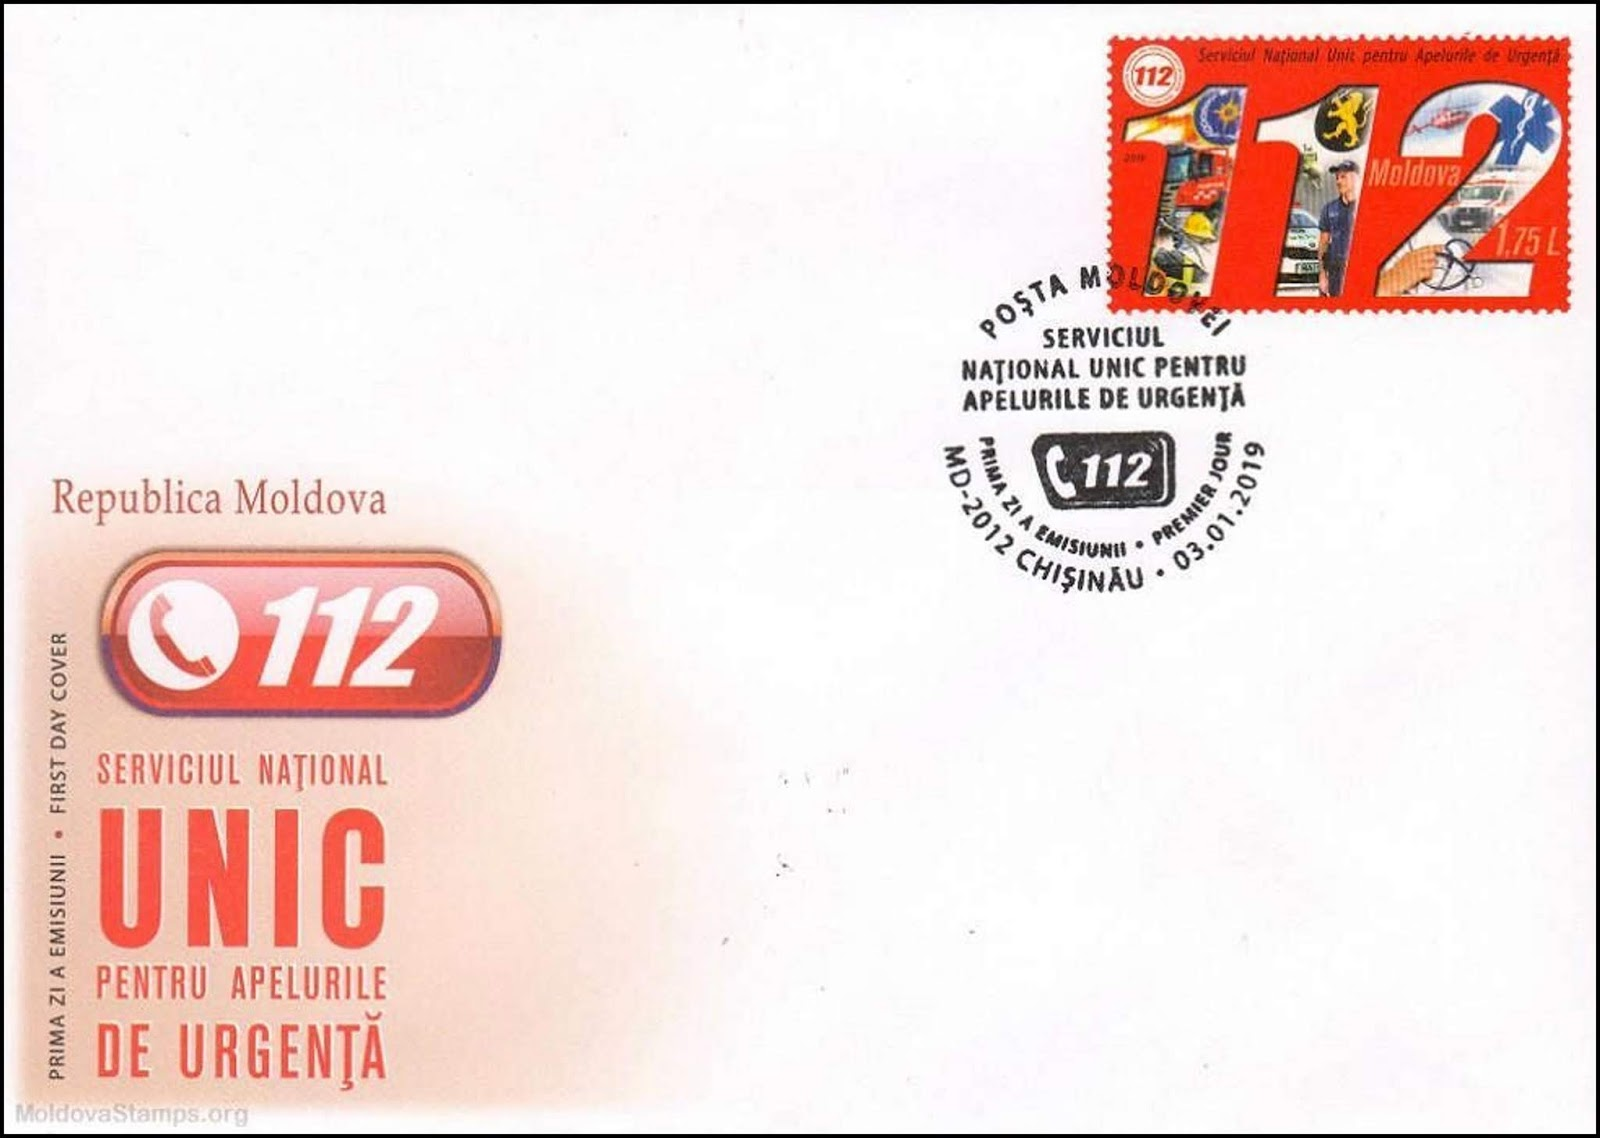 Moldova - National Emergency Service (January 2, 2019) first day cover